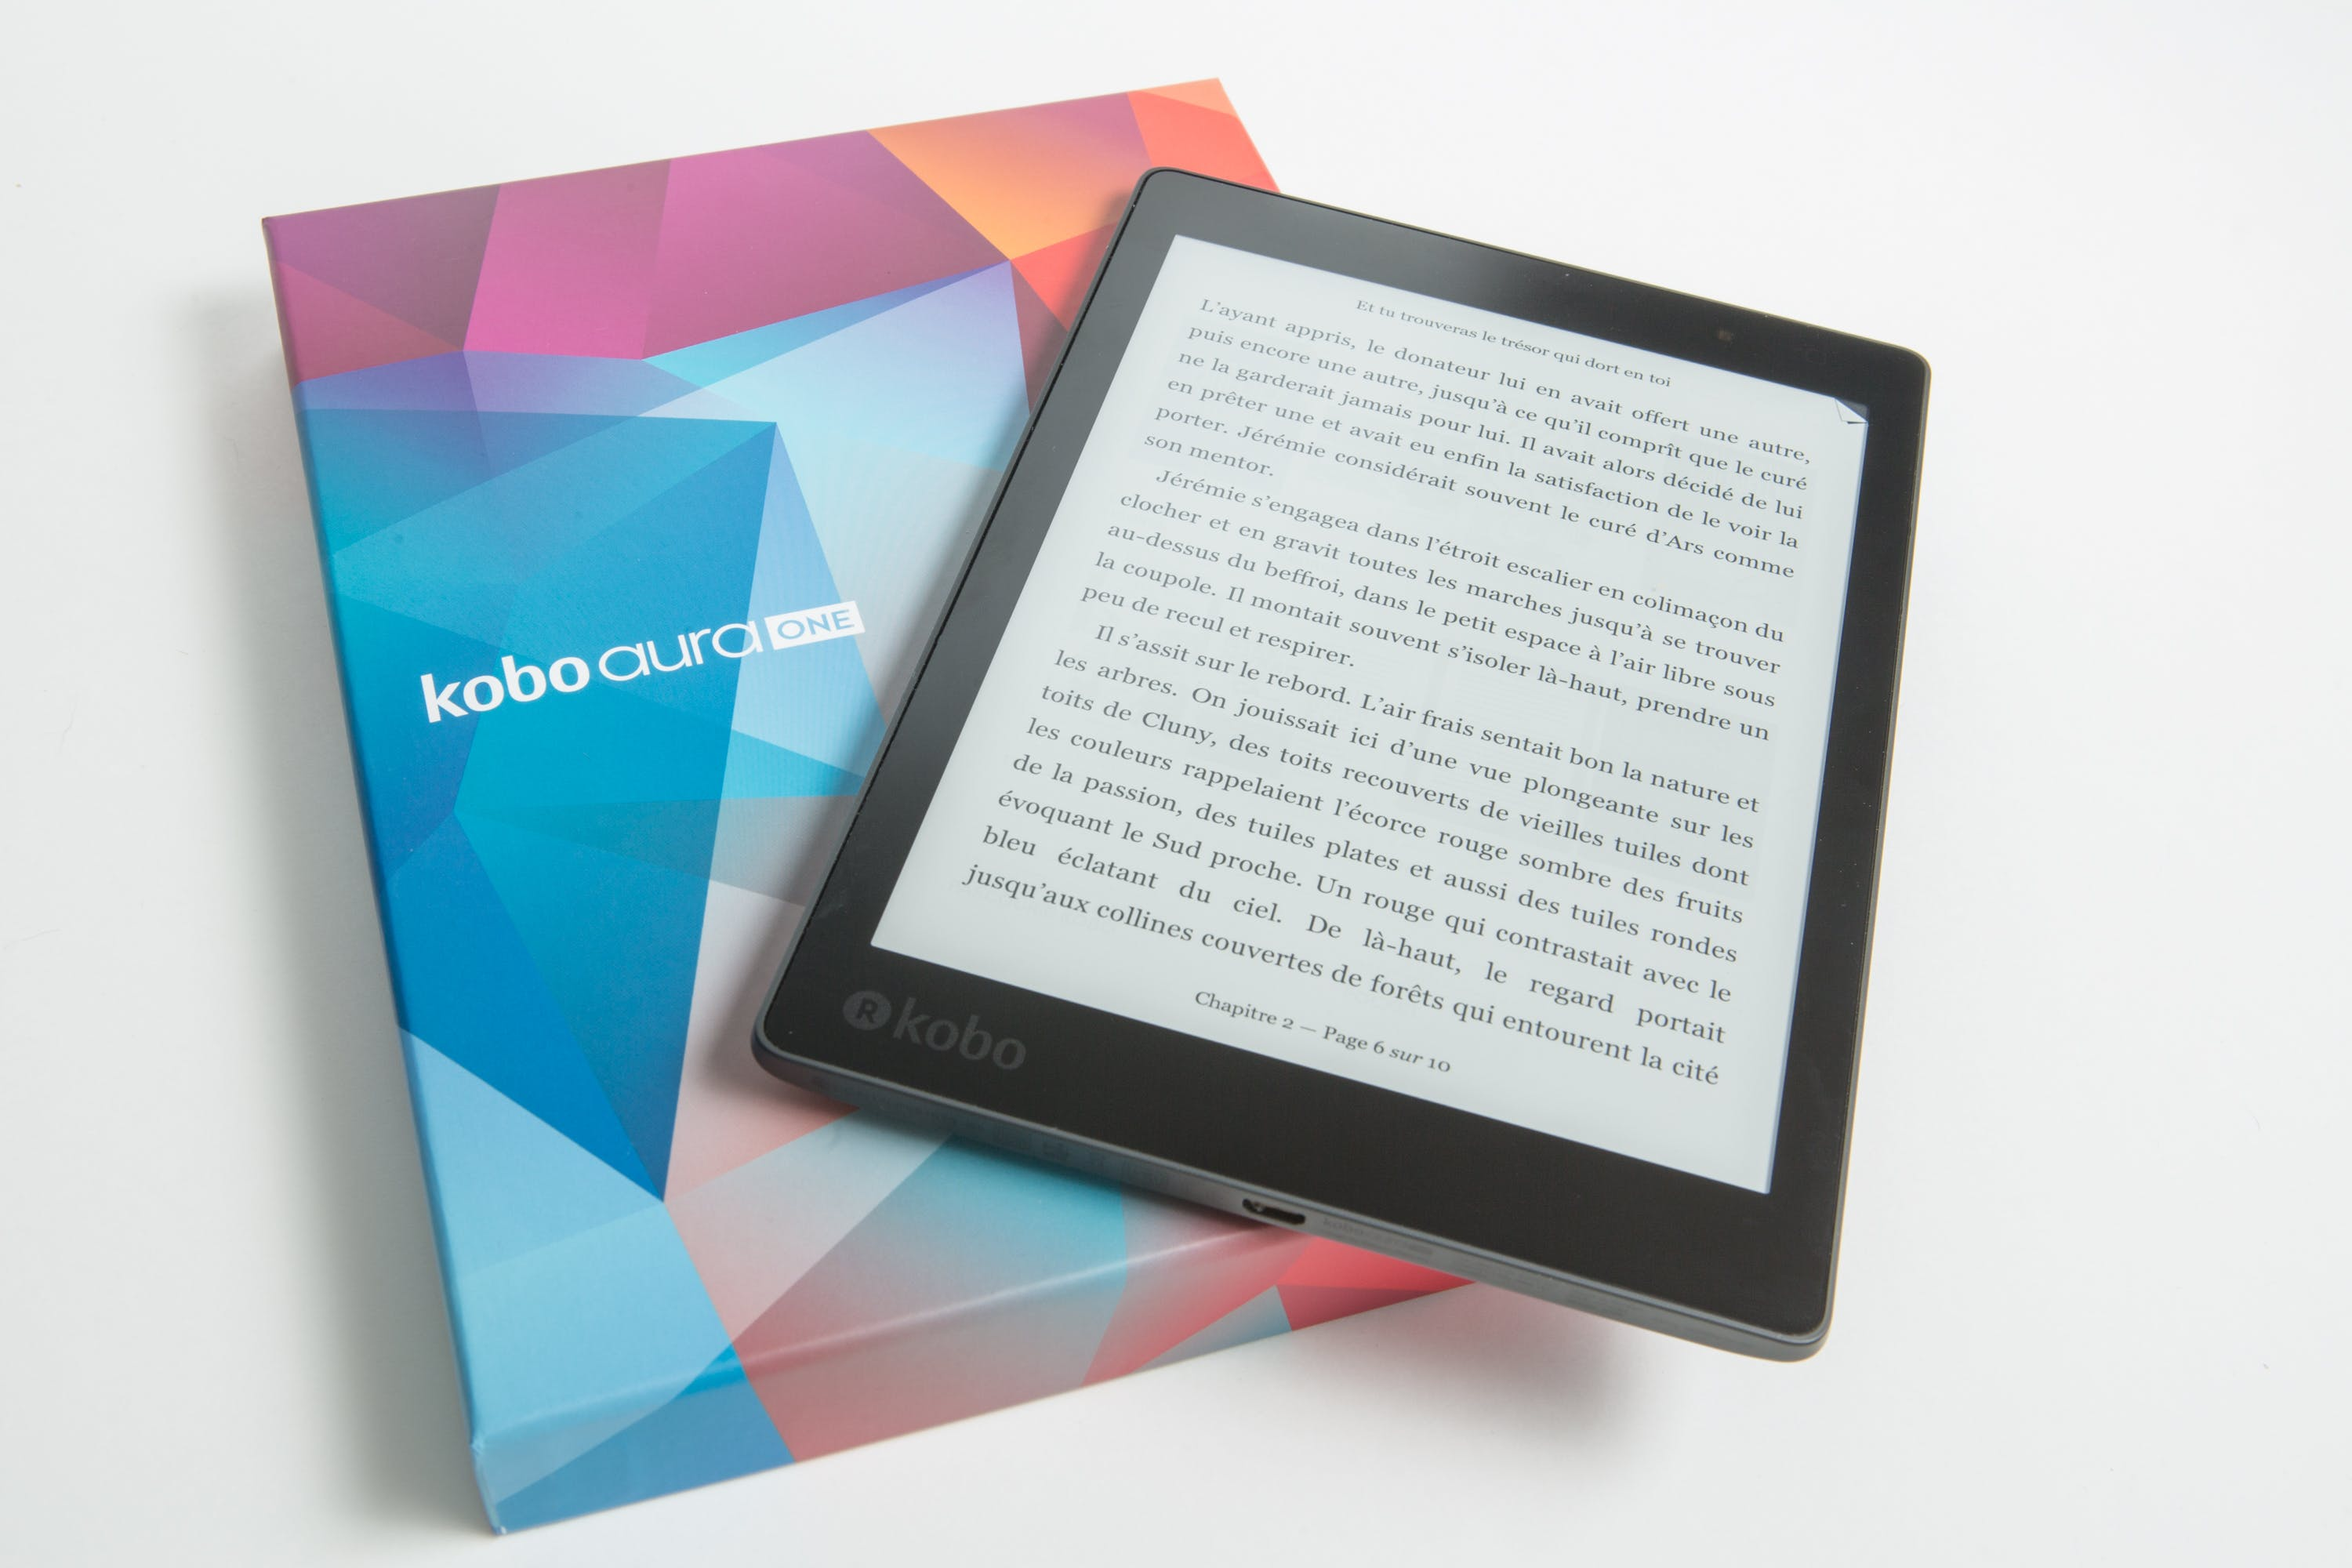 Black Kobo Aura One Tablet With Box